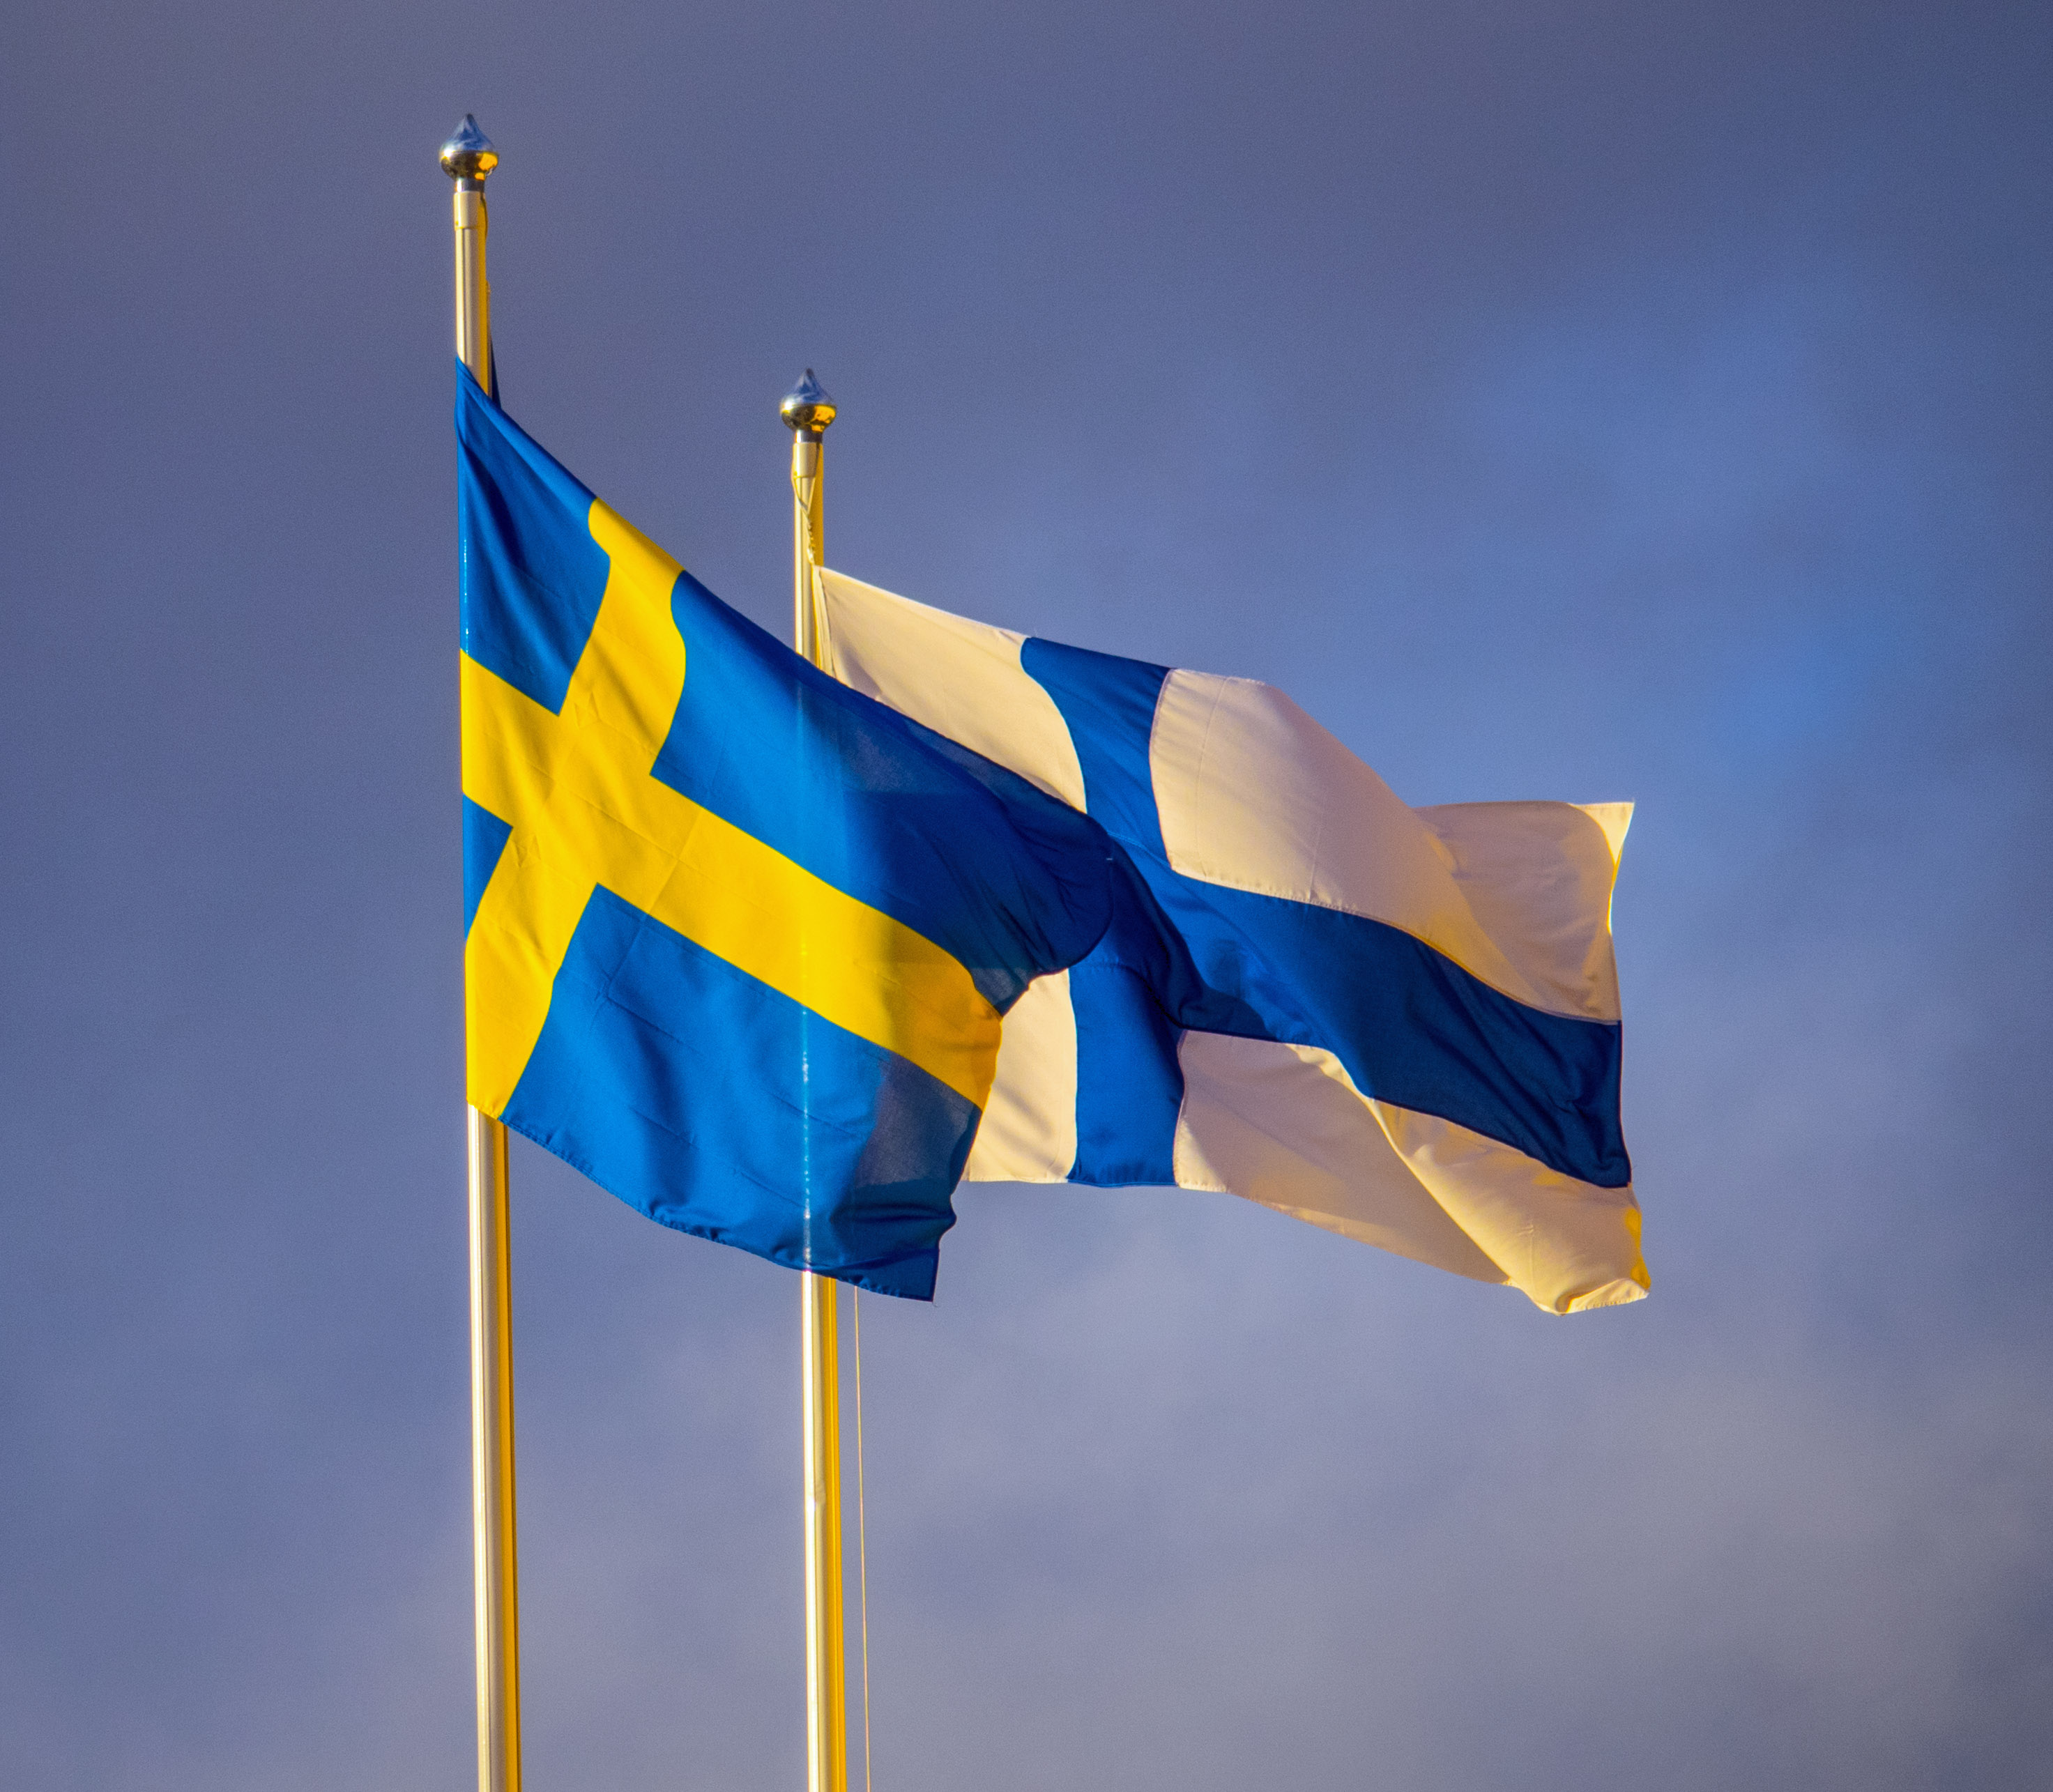 Ikea Front File:swedish And Finnish Flag Flying In Front Of Ikea Raisio, Finland.jpg - Wikimedia Commons